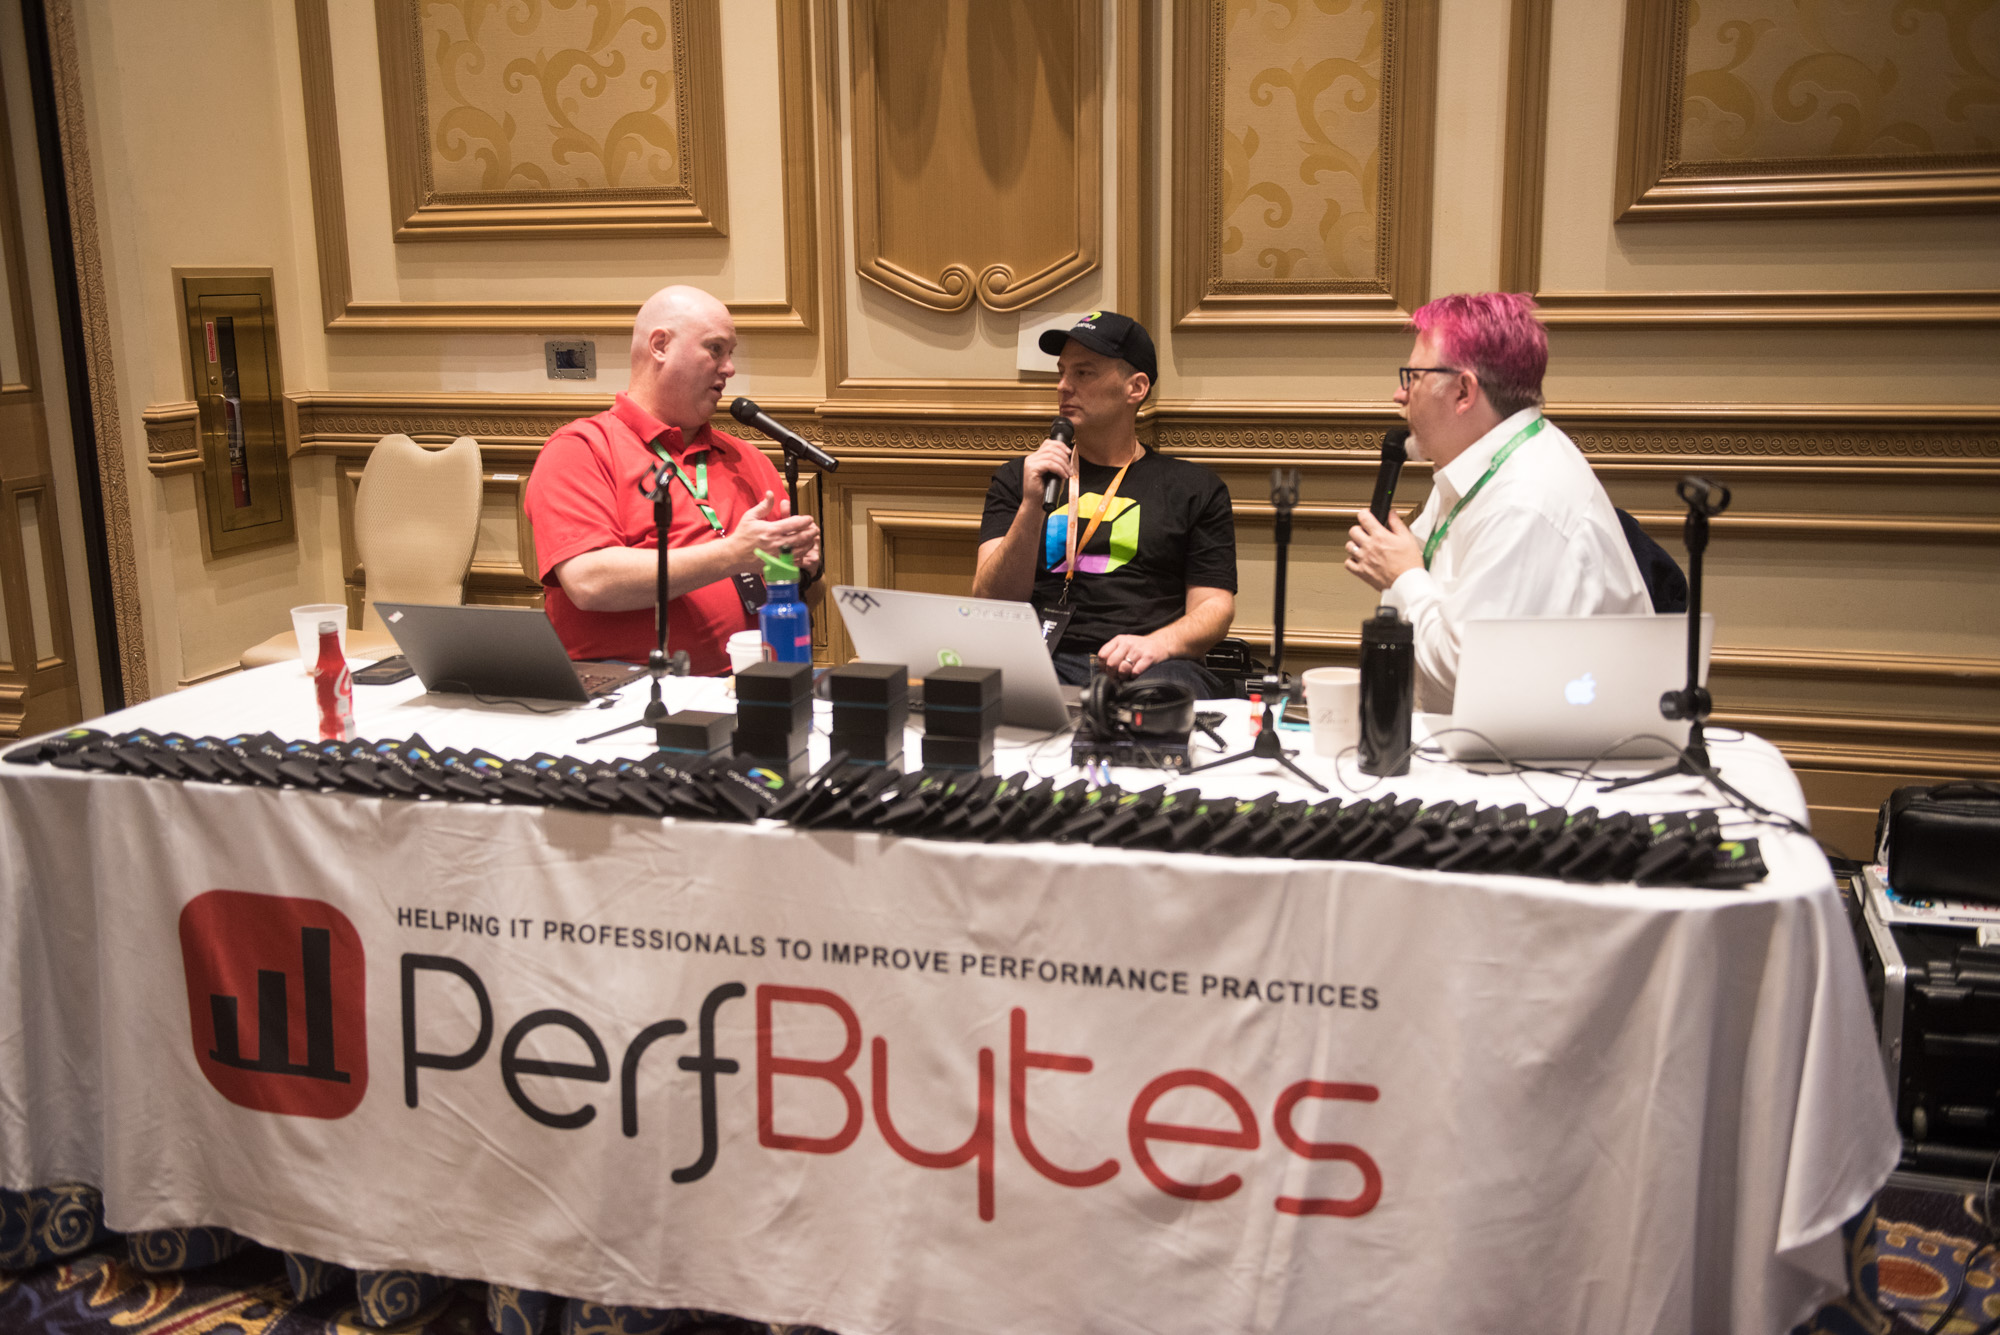 PerfBytes podcast live studio at perform 2018 Las Vegas